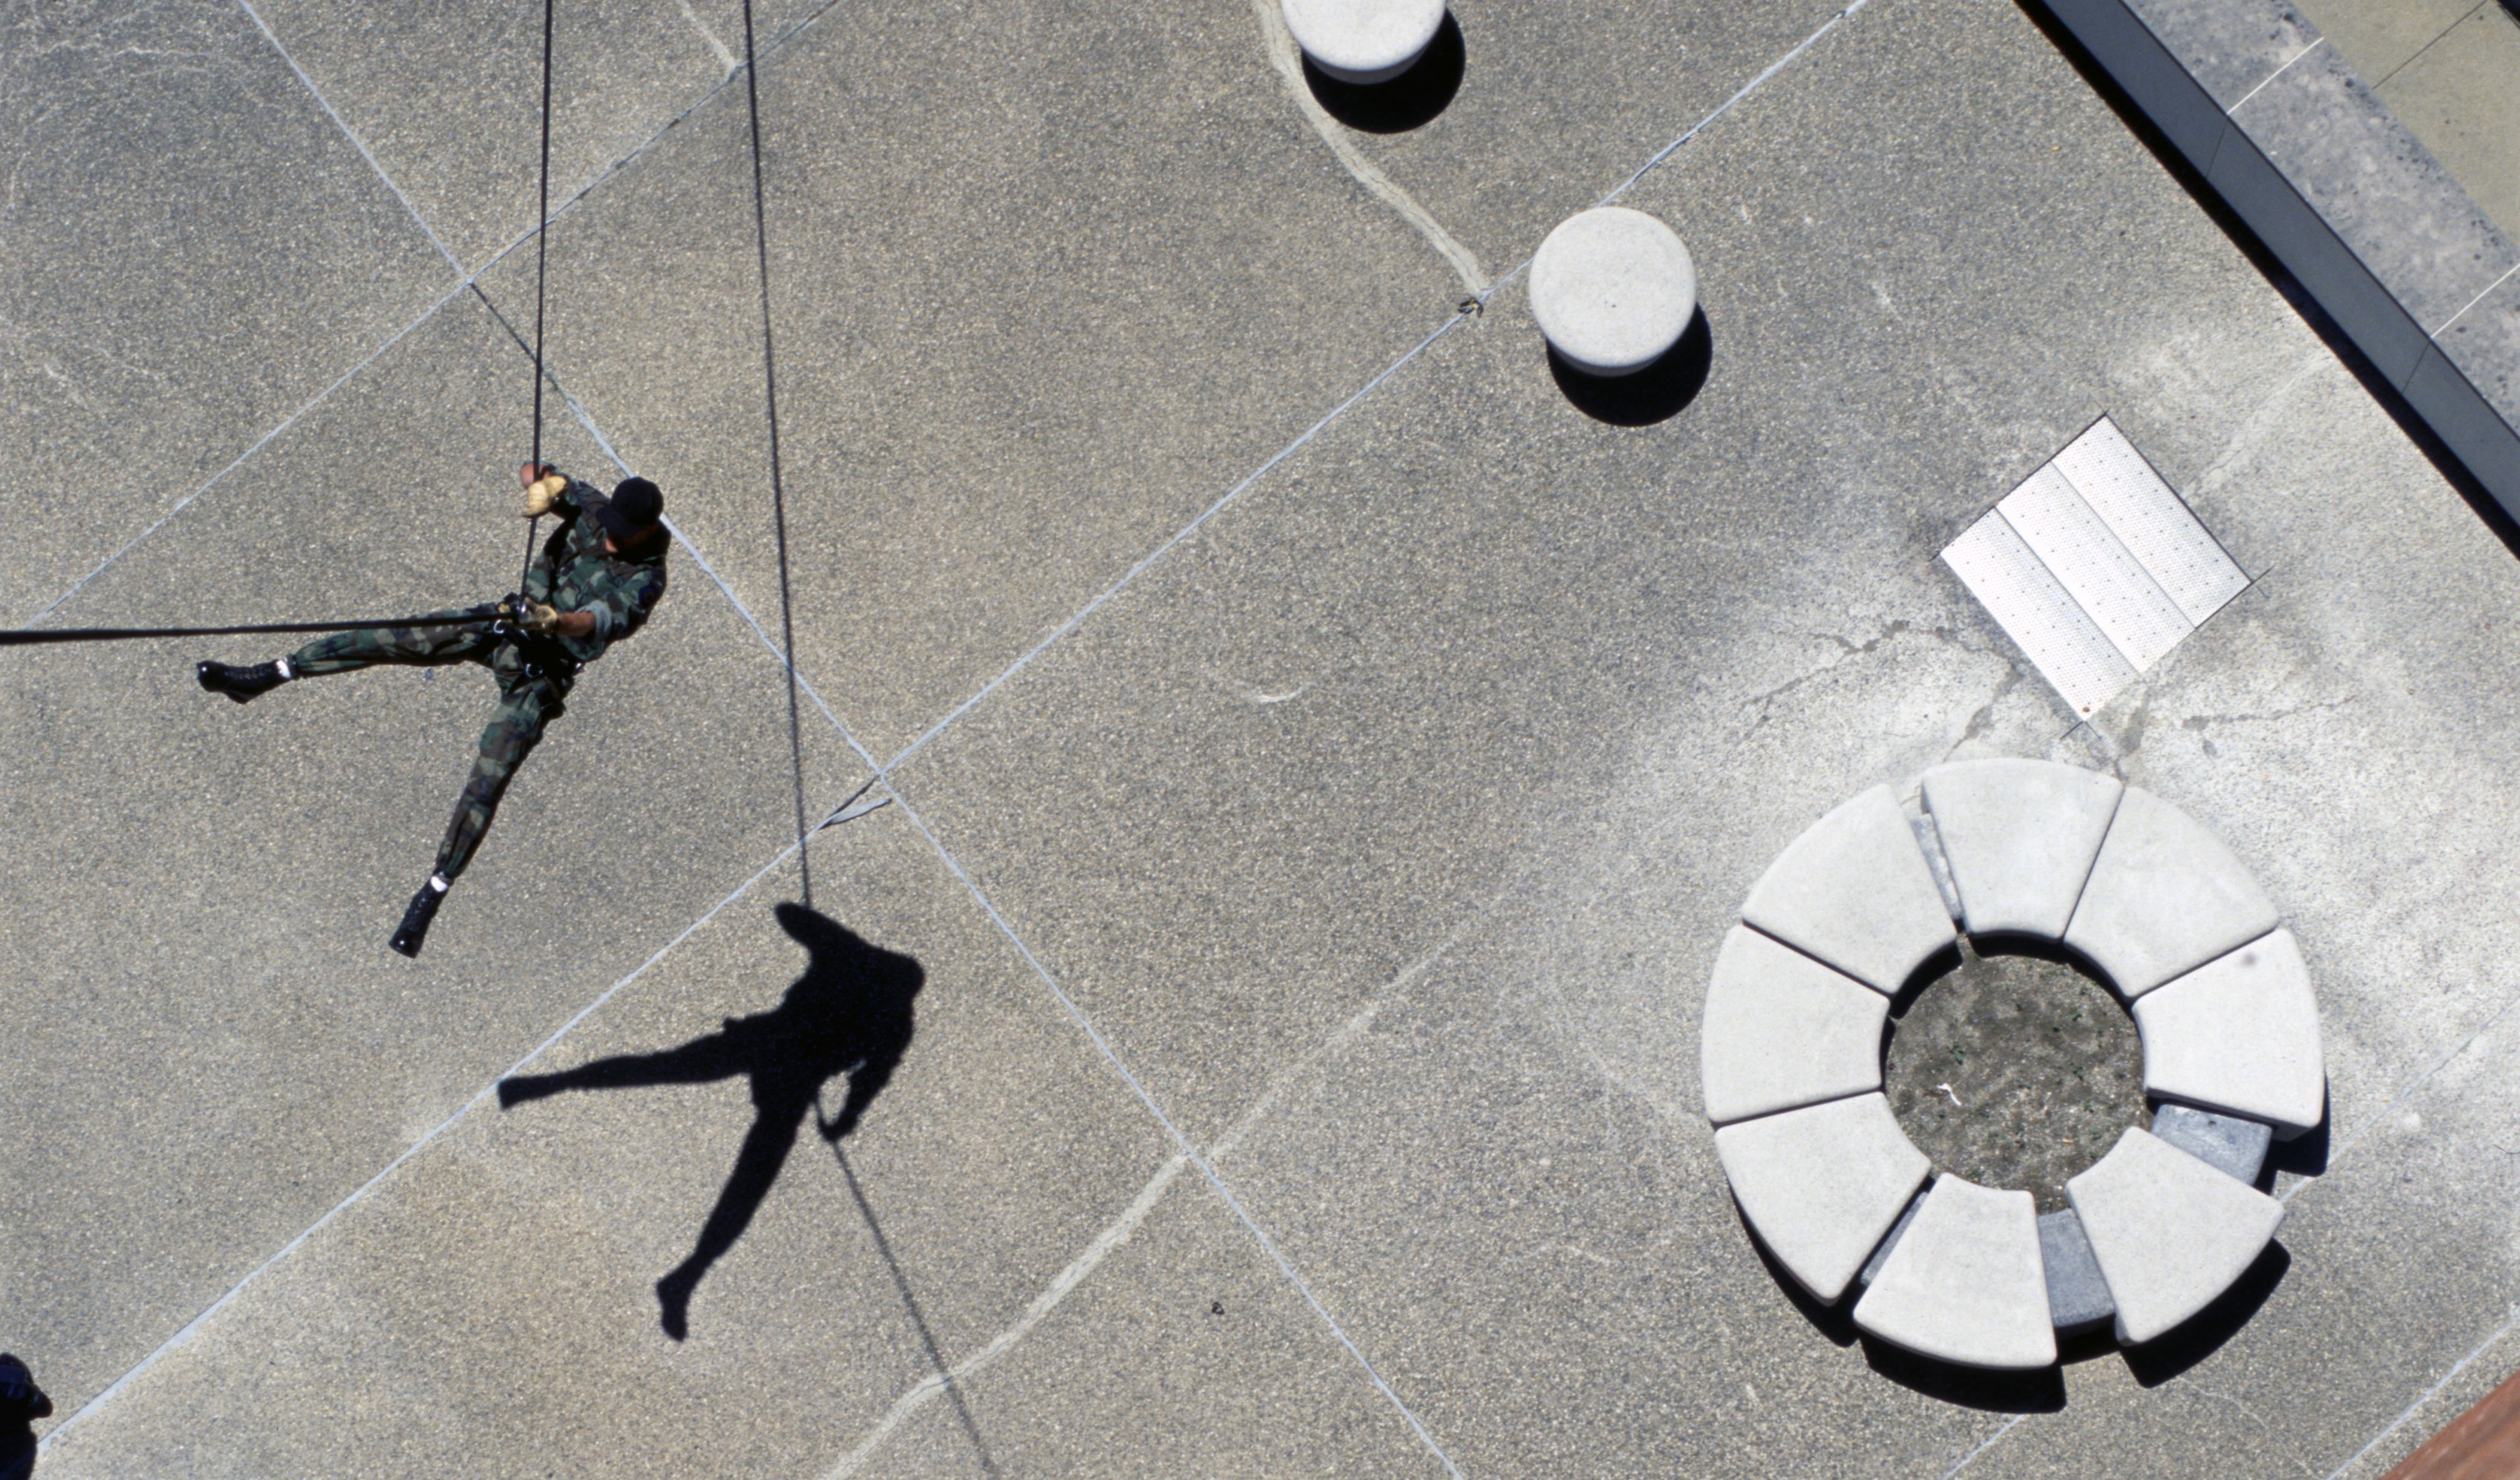 Police Captain Gary Kistka Rappels From The Top Of City Hall, June 1991 image